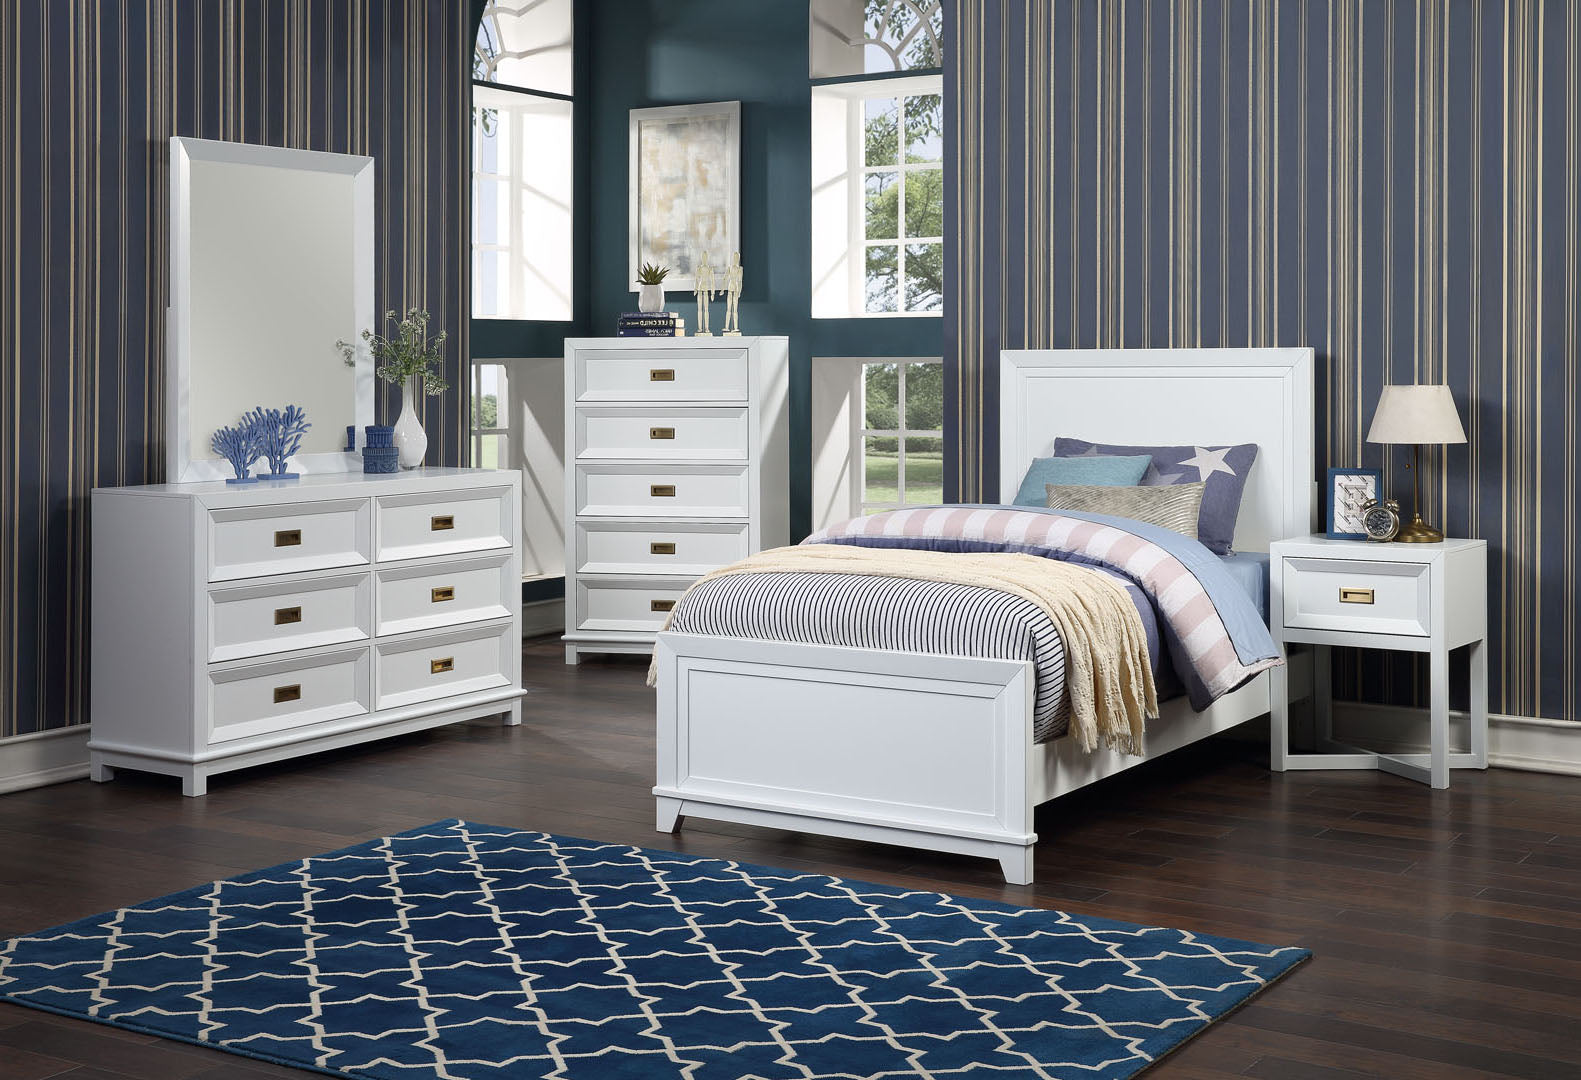 Victoria Bedroom Set Collection, Soft White Wood, Contemporary